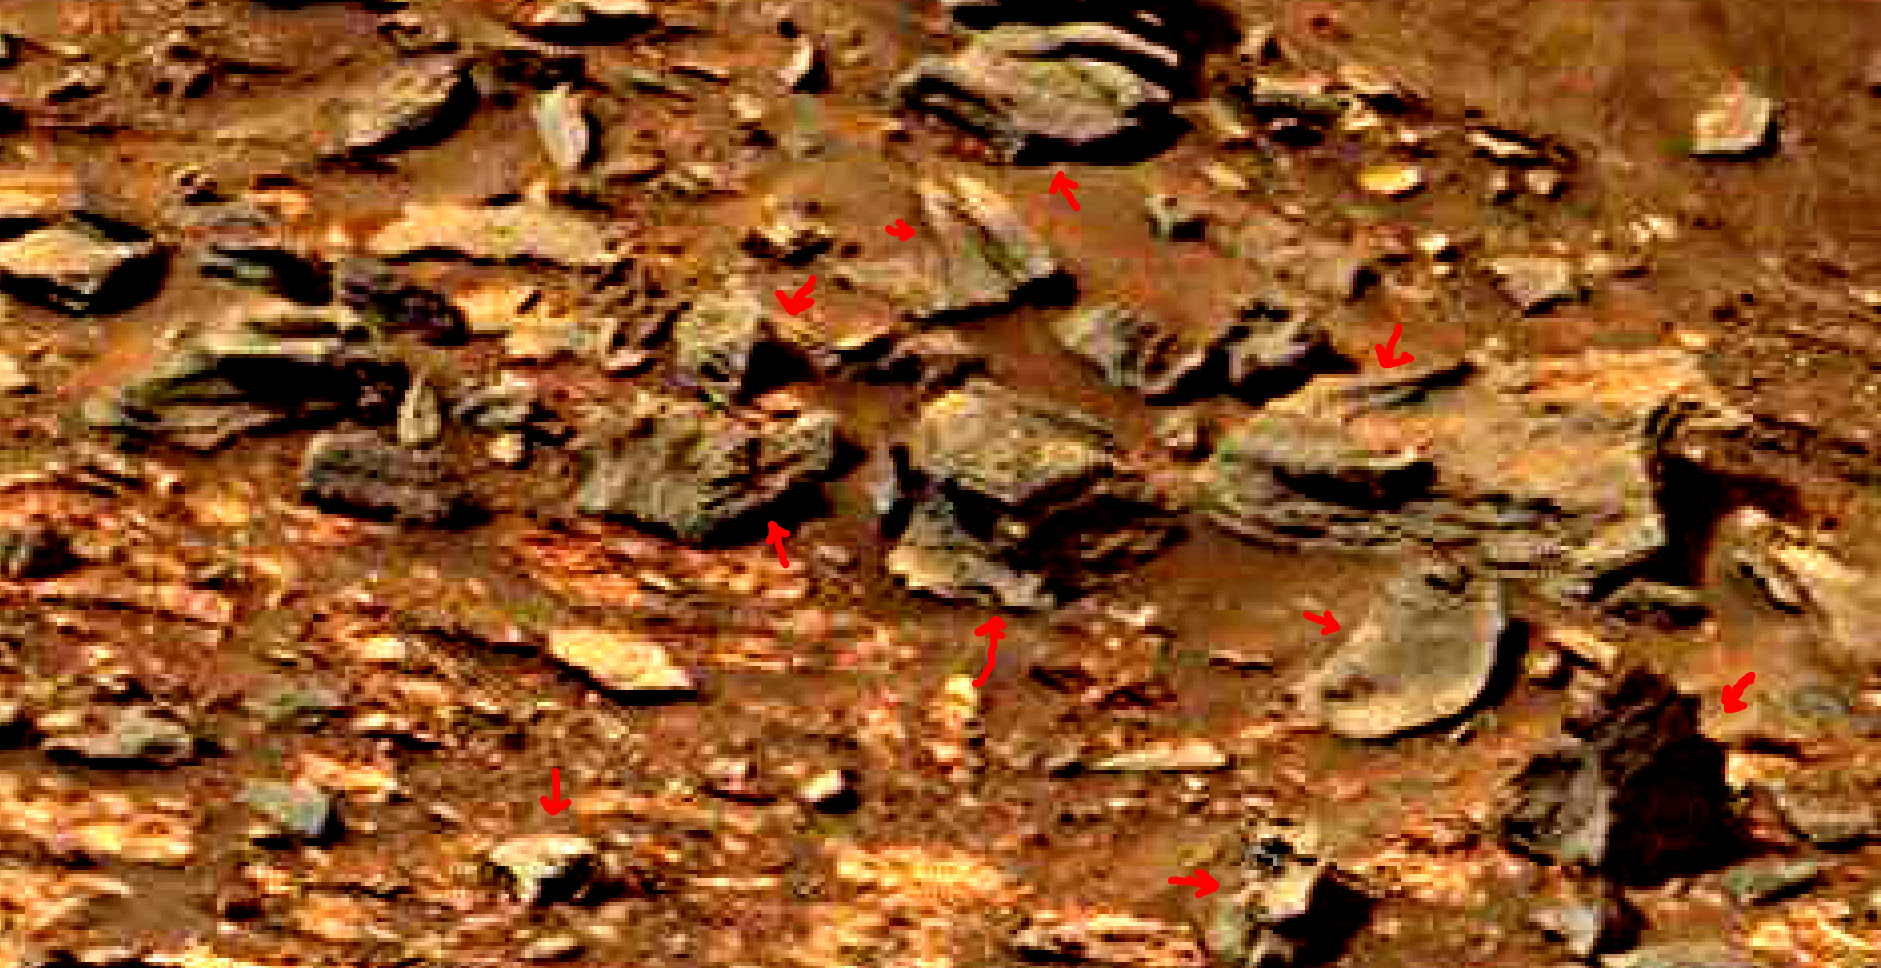 mars-sol-1463-anomaly-artifacts-29-was-life-on-mars